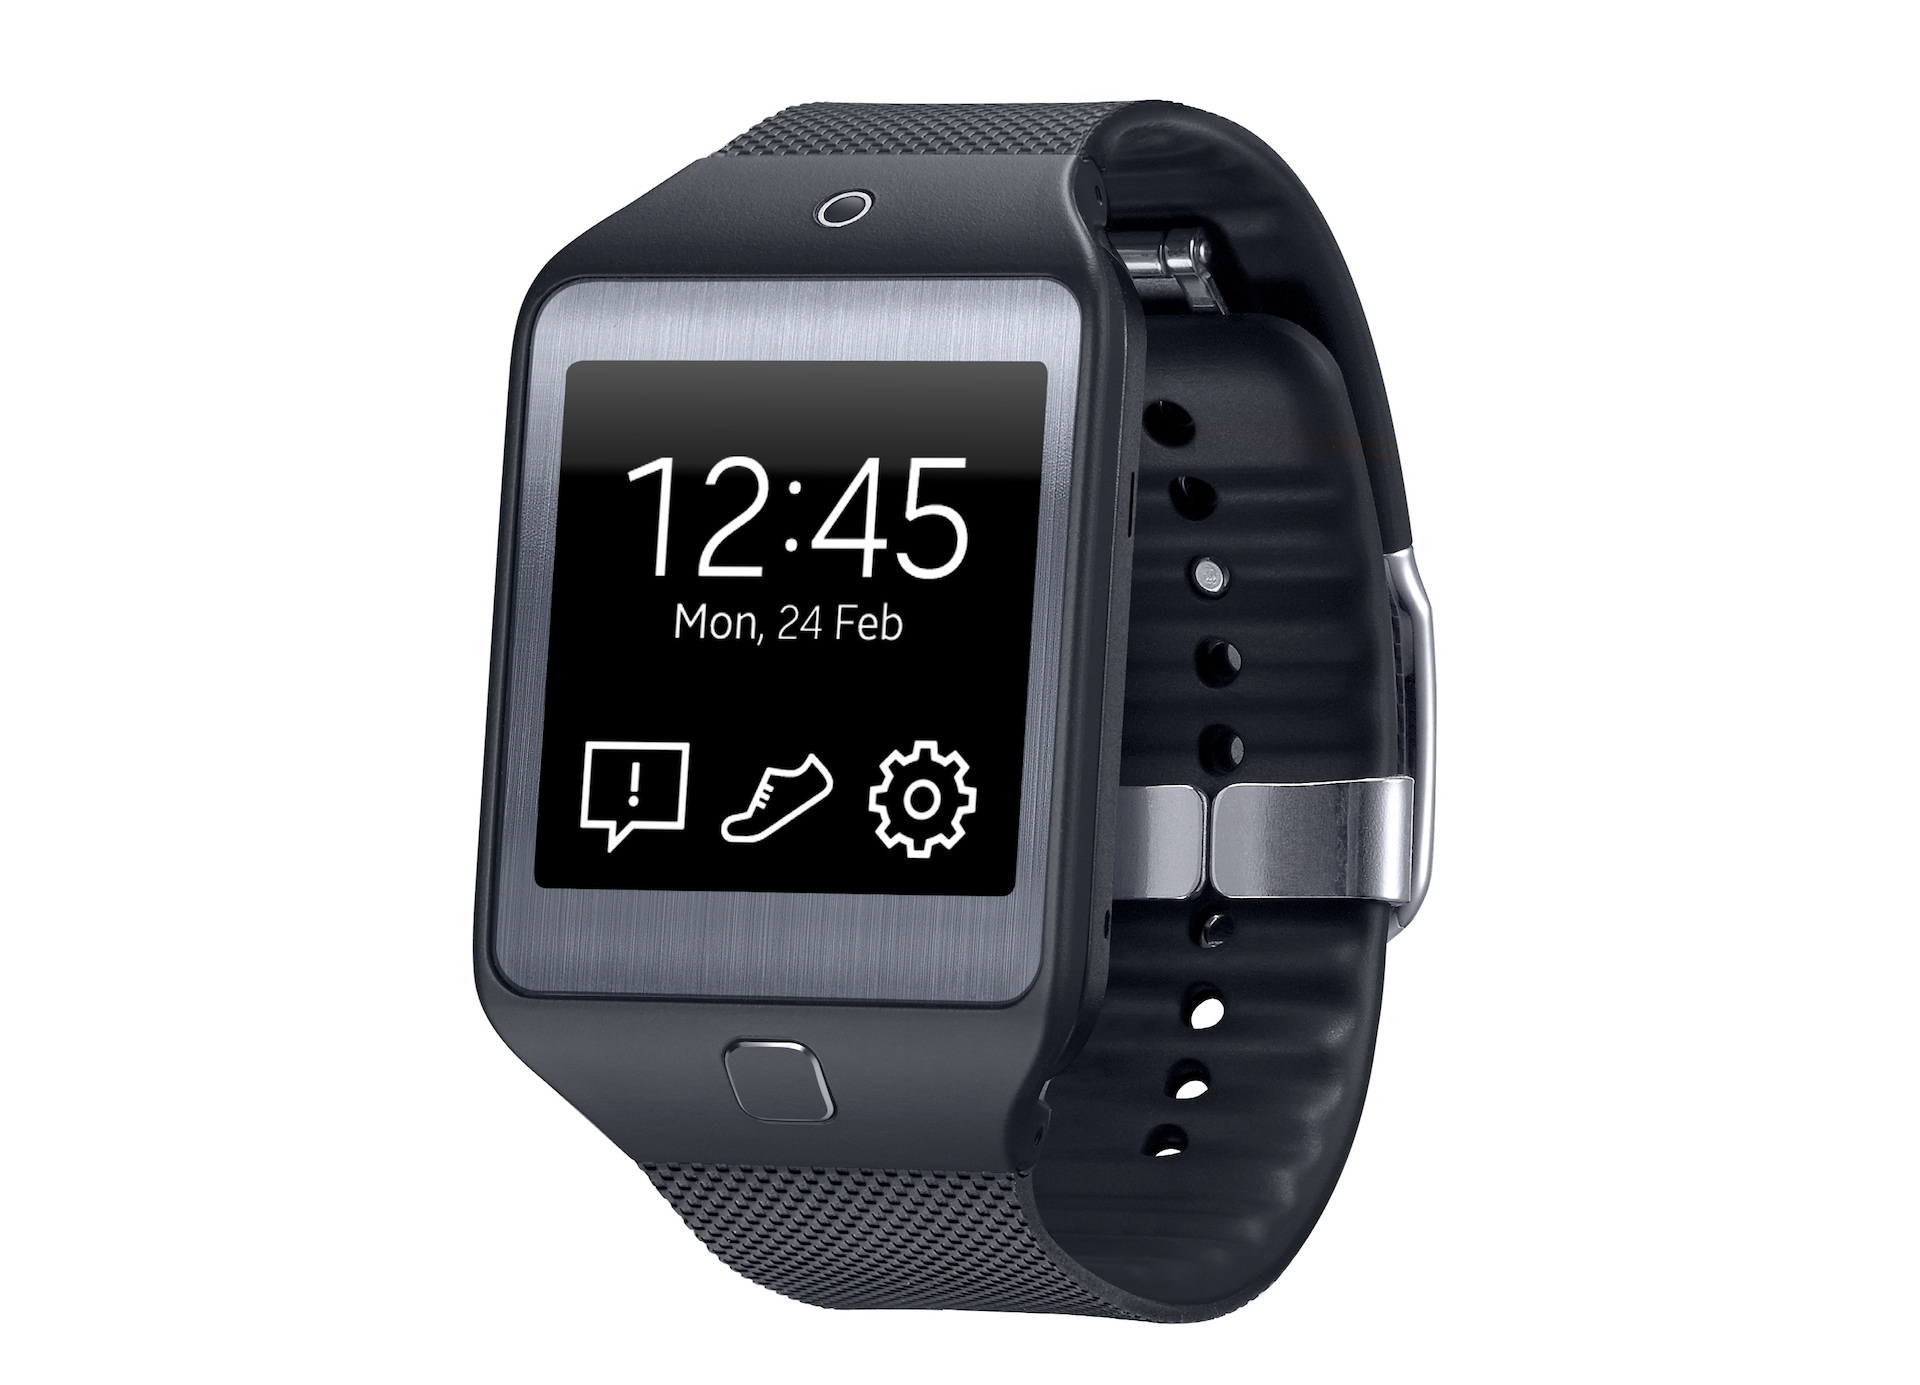 new for you infinity watches smartwatches get faces samsung watchfaces first gear should your watch